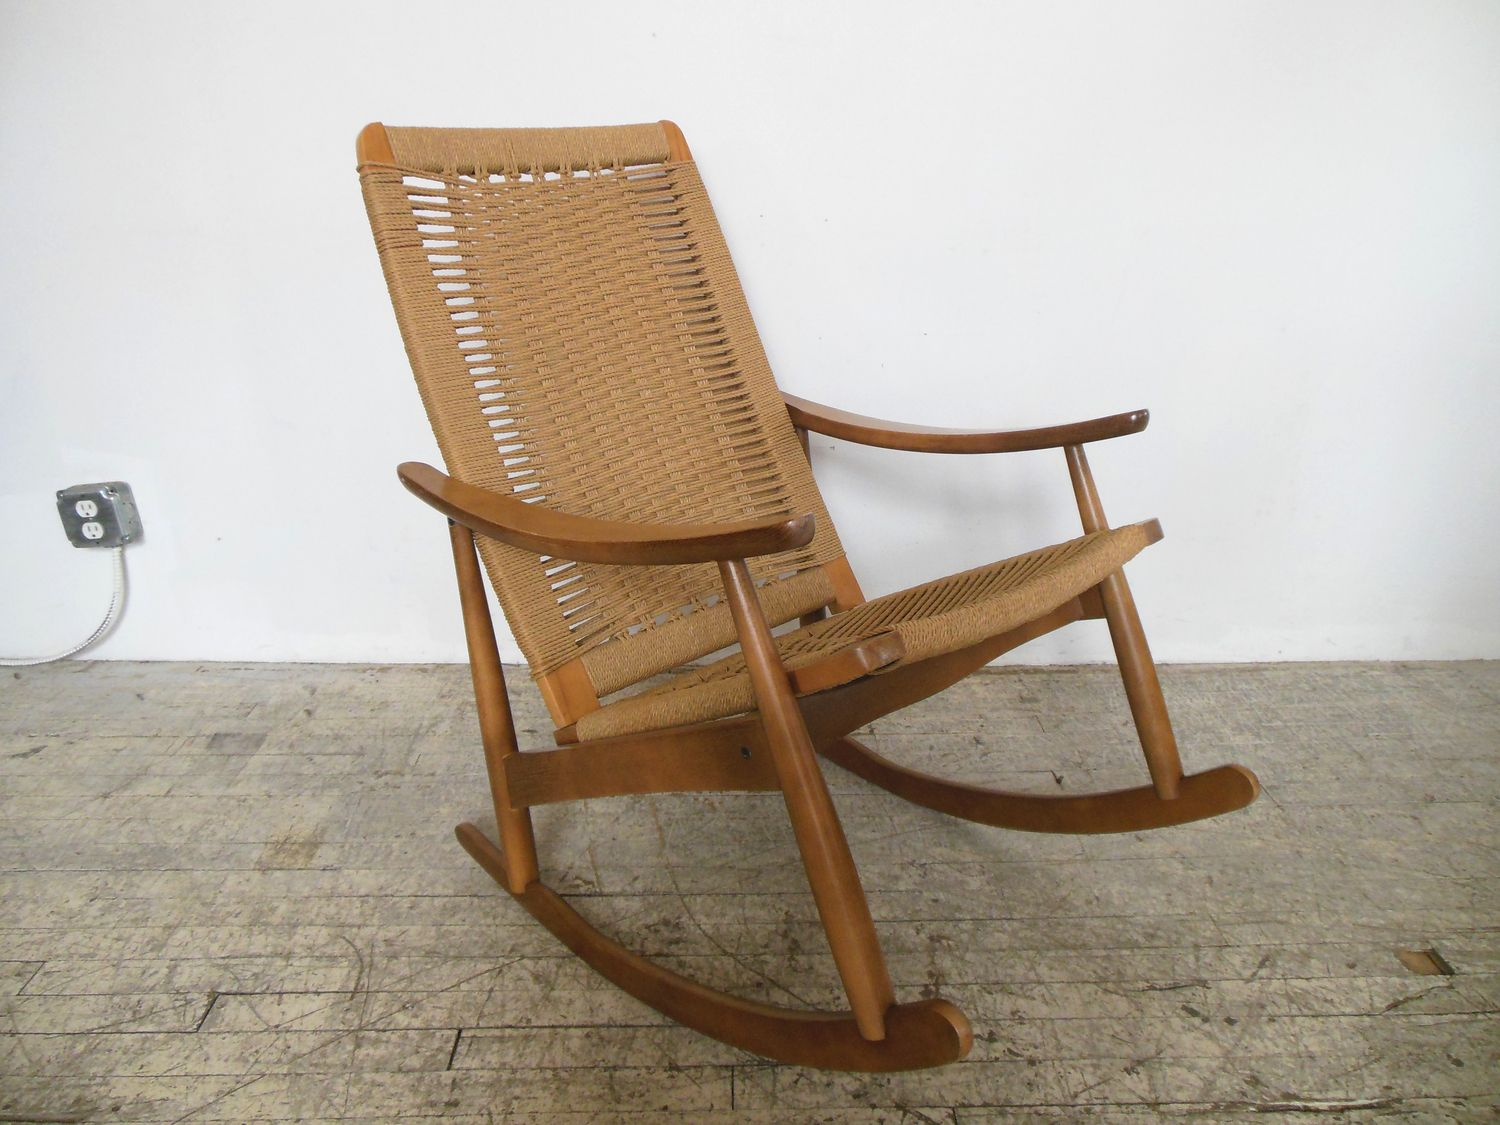 Price reduced sturdy wooden vintage rocking chair made in yugoslavia - Yugoslavian Rope Rocking Chair Repop